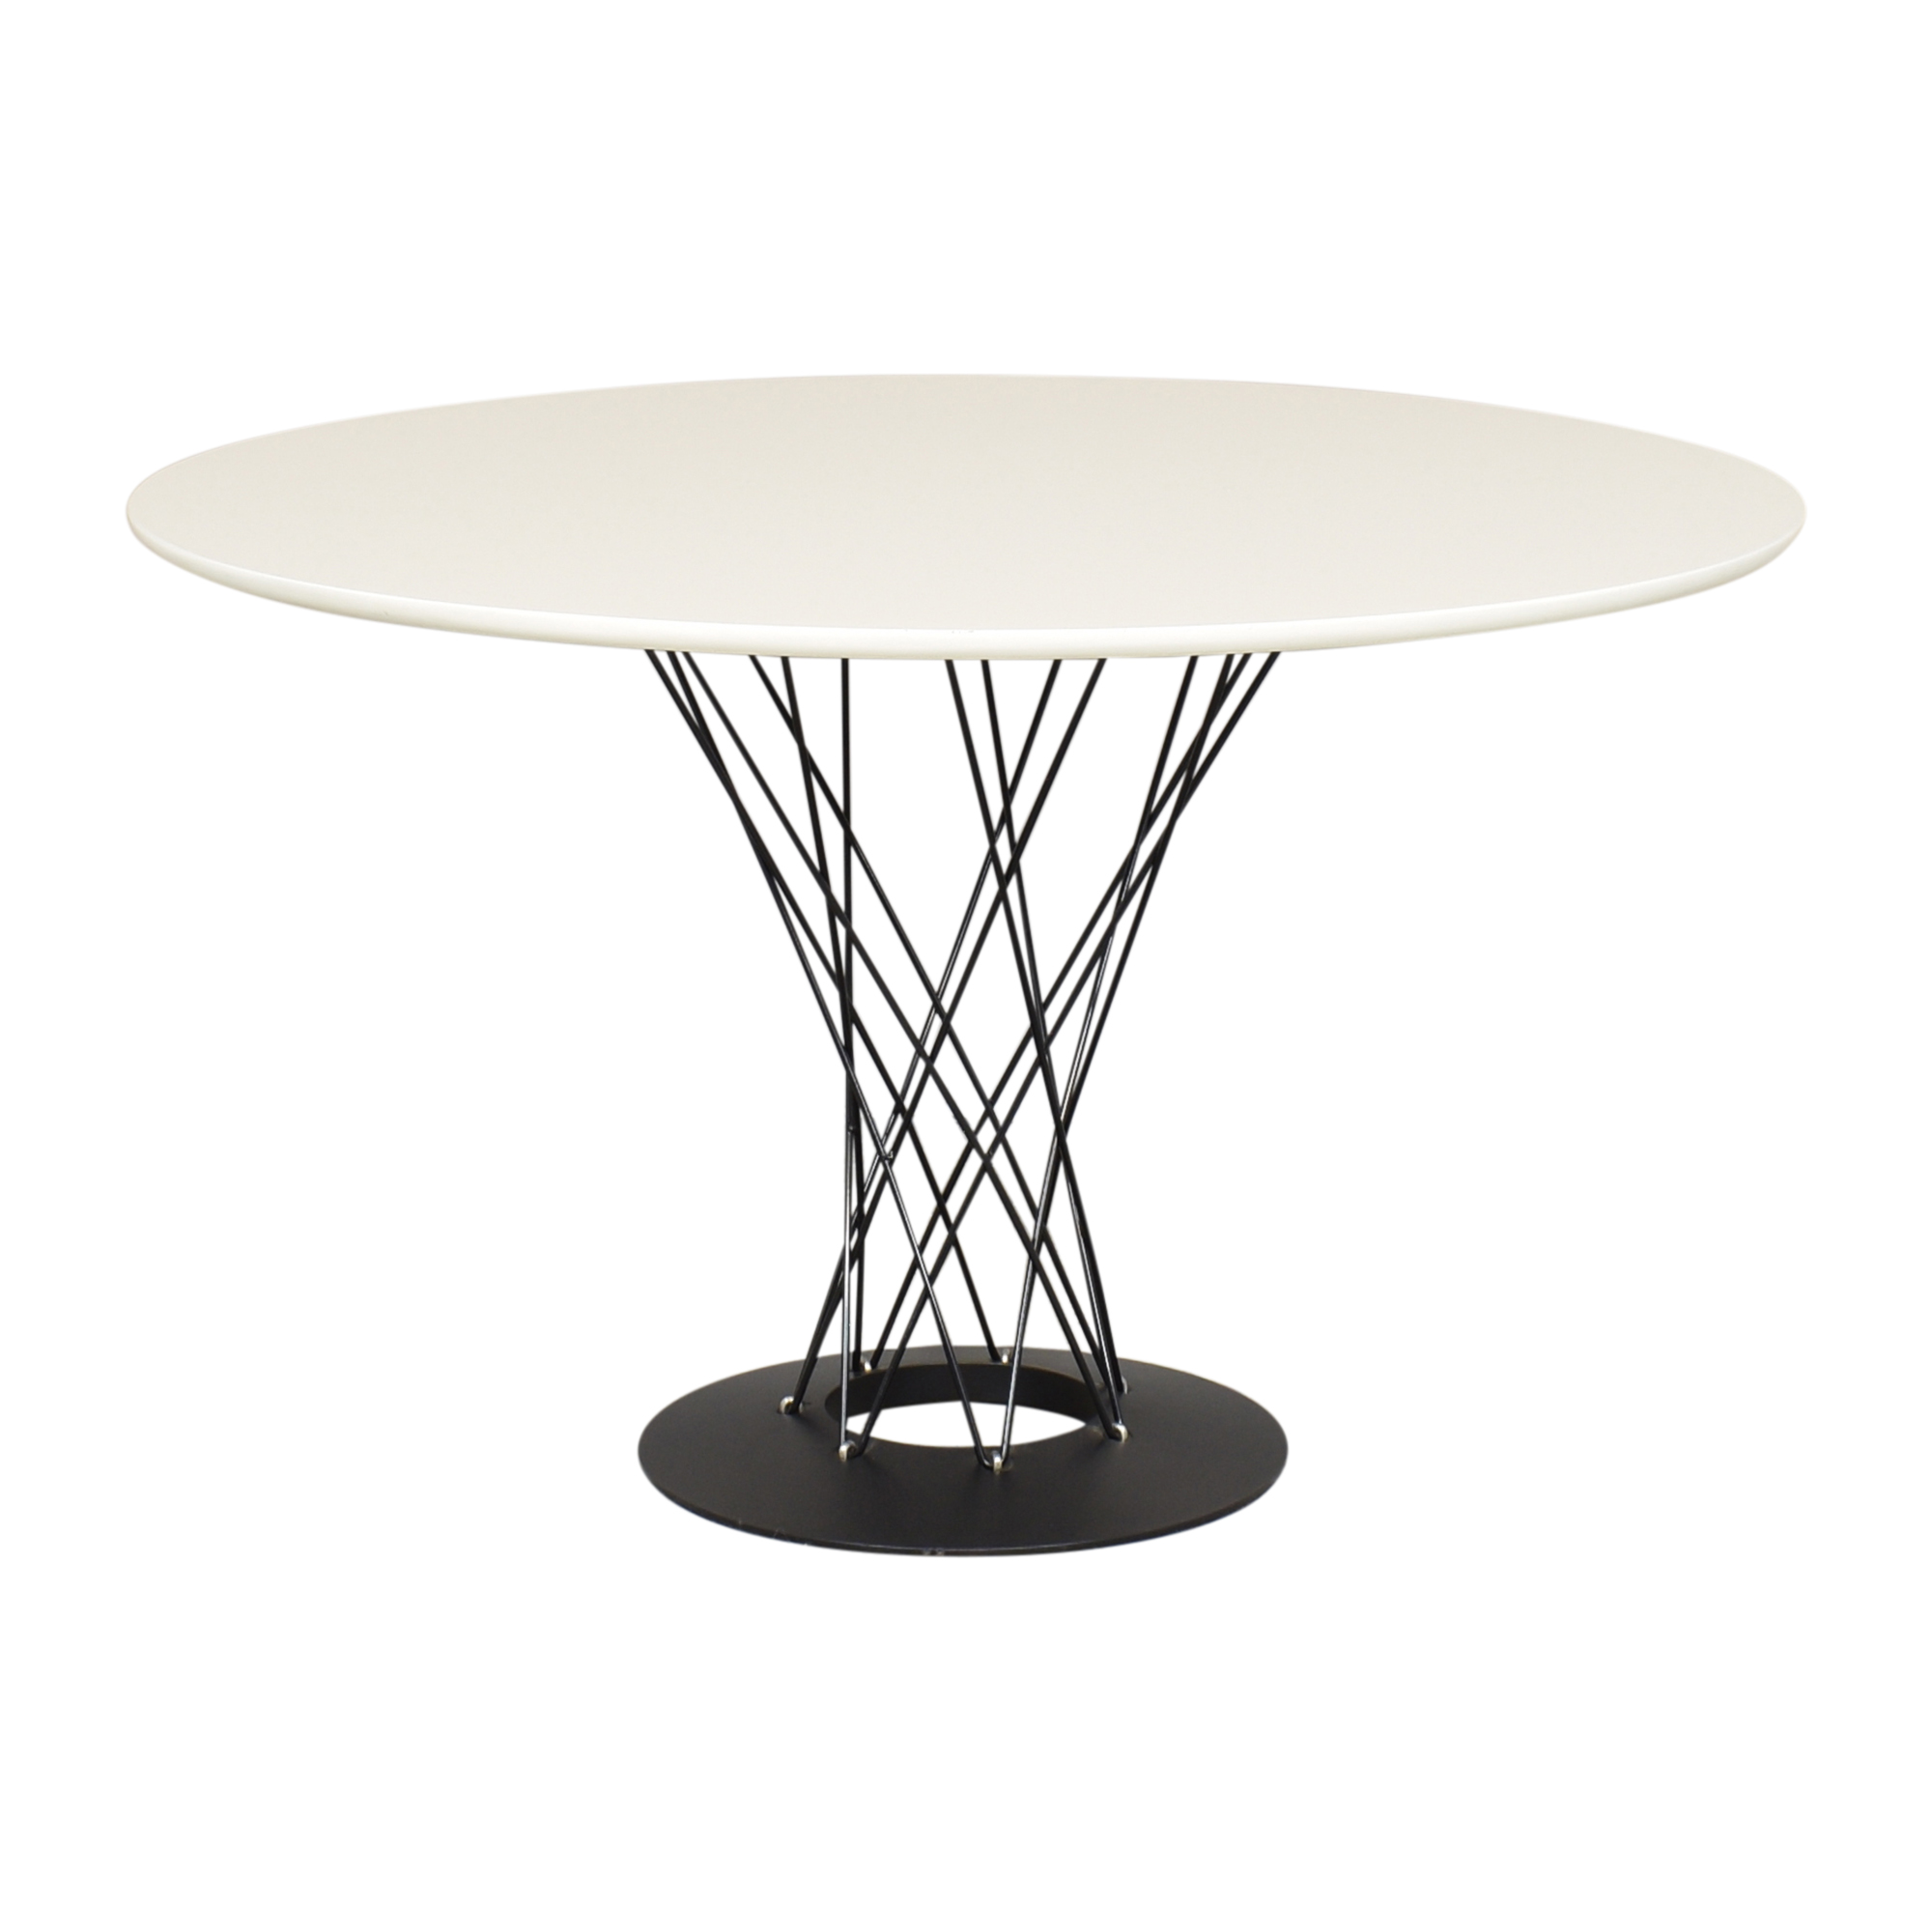 Dot & Bo Cyclone-Style Dining Table sale